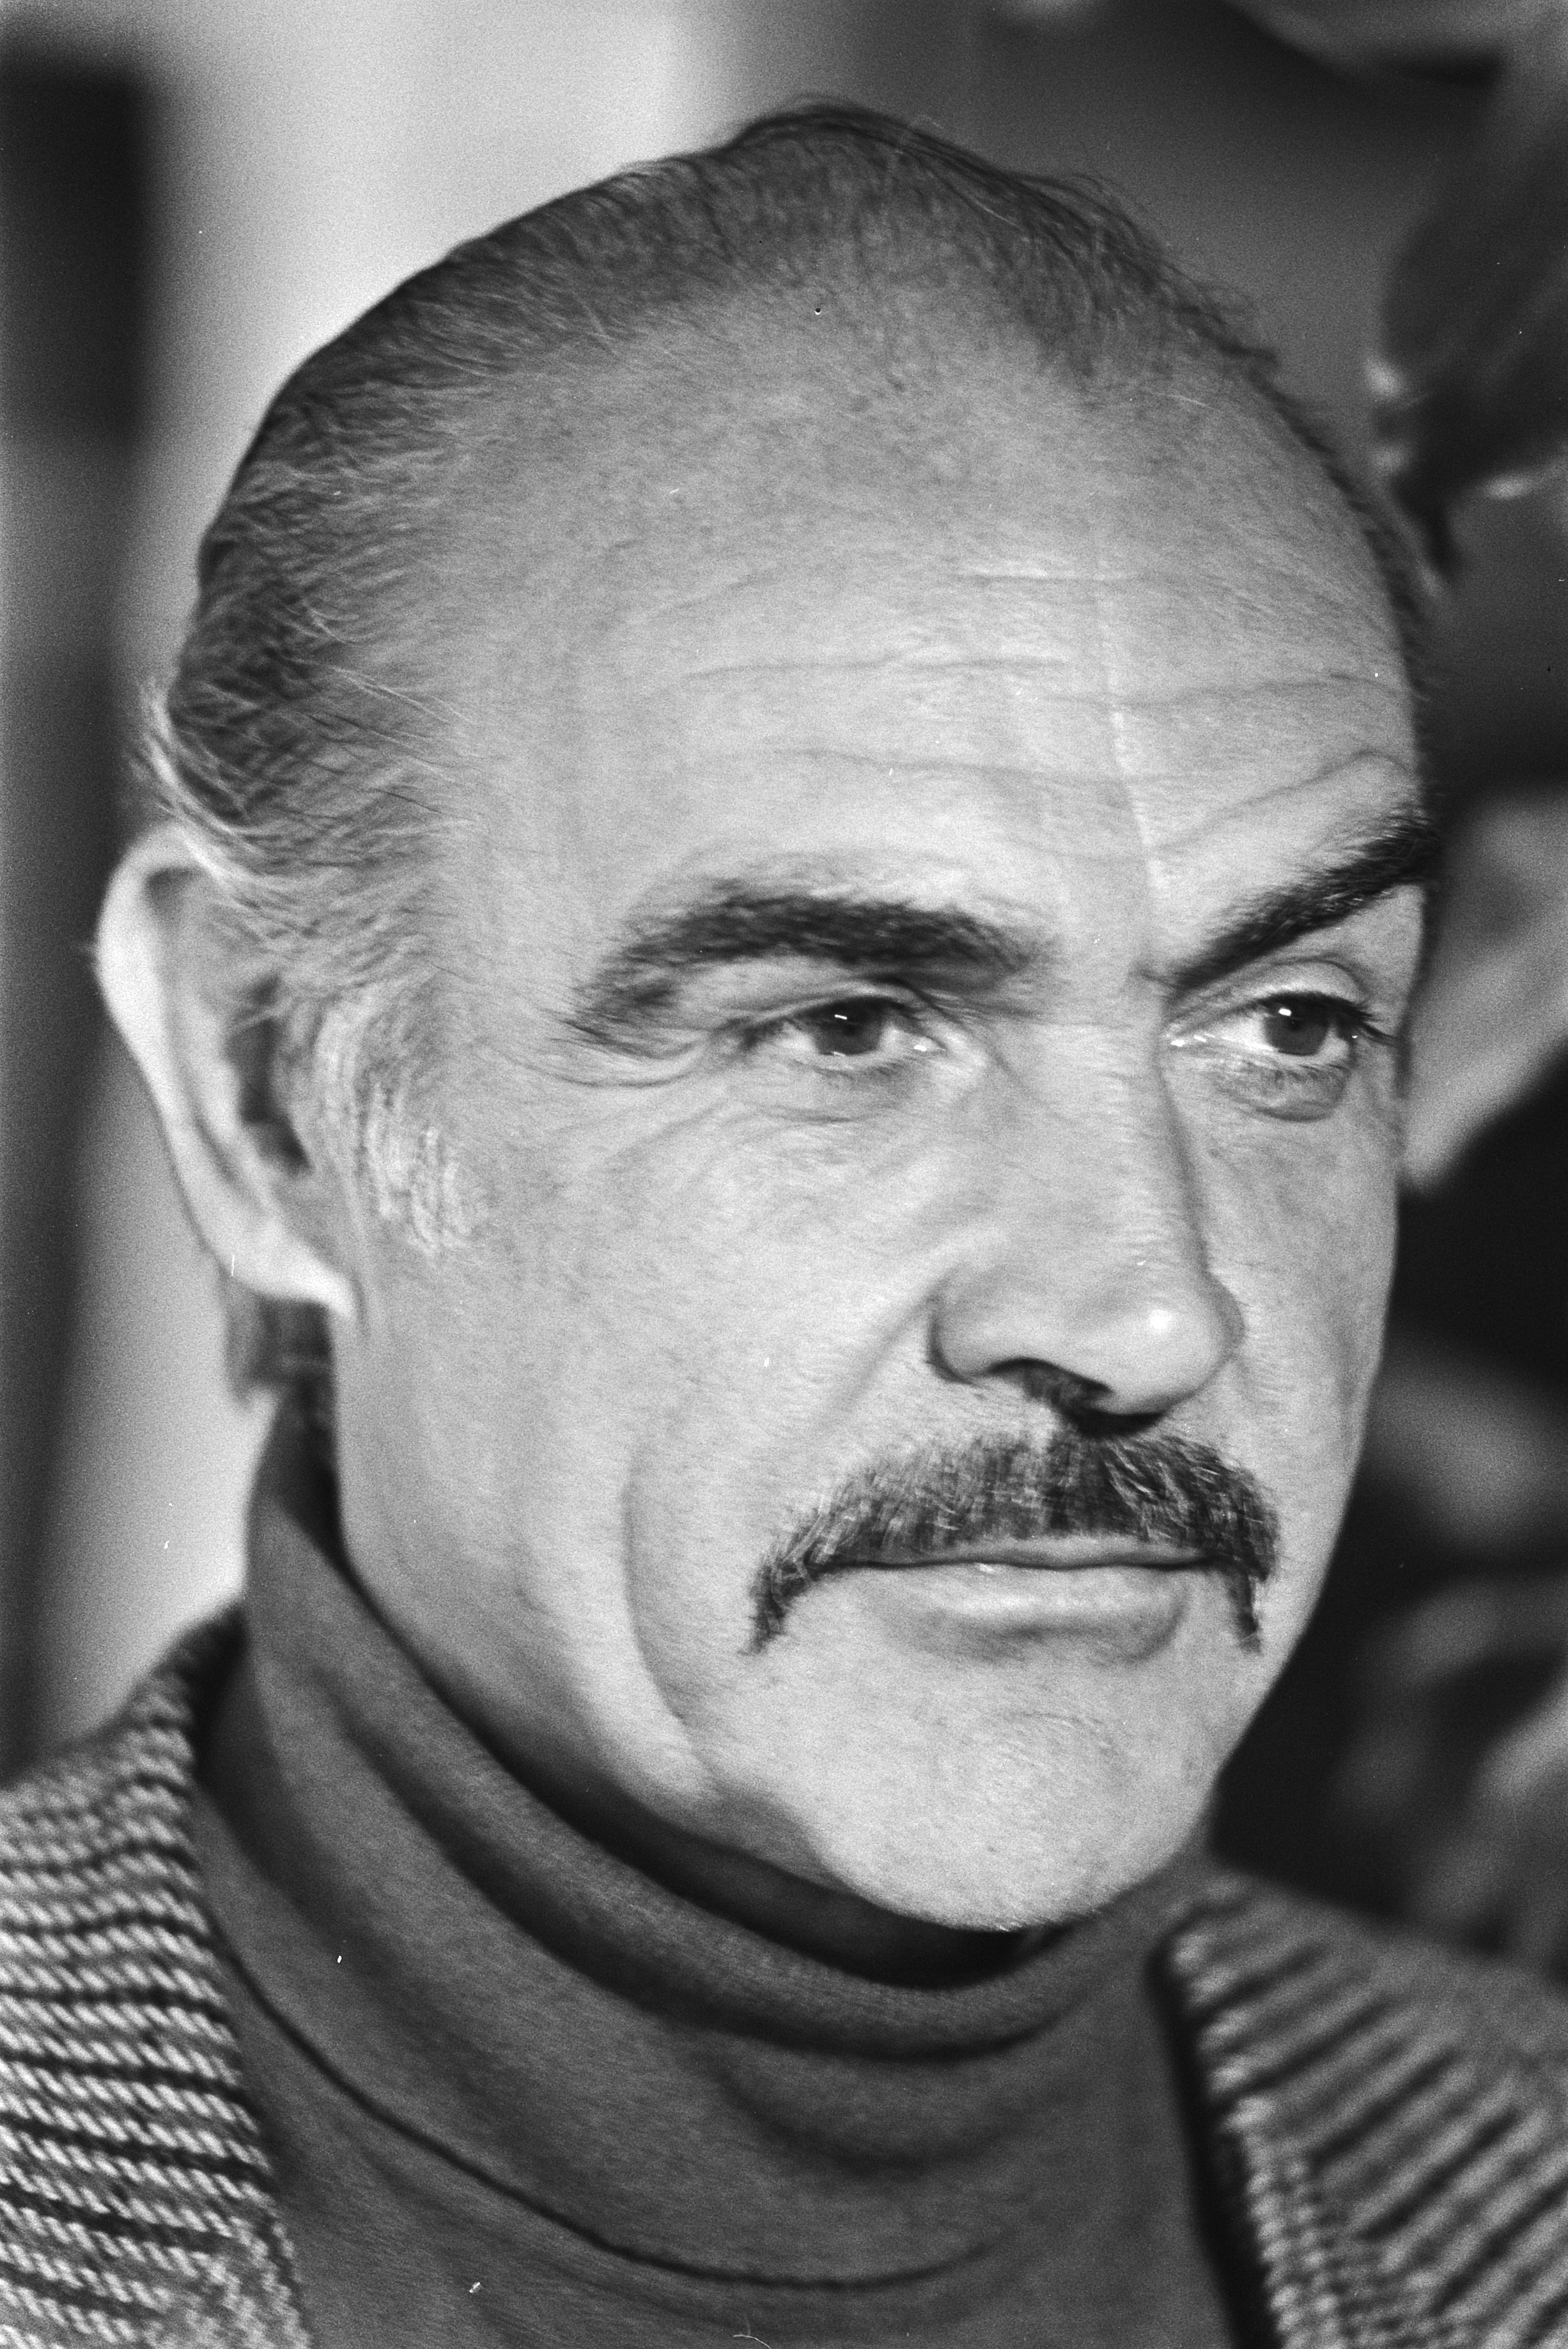 sean connery - photo #38